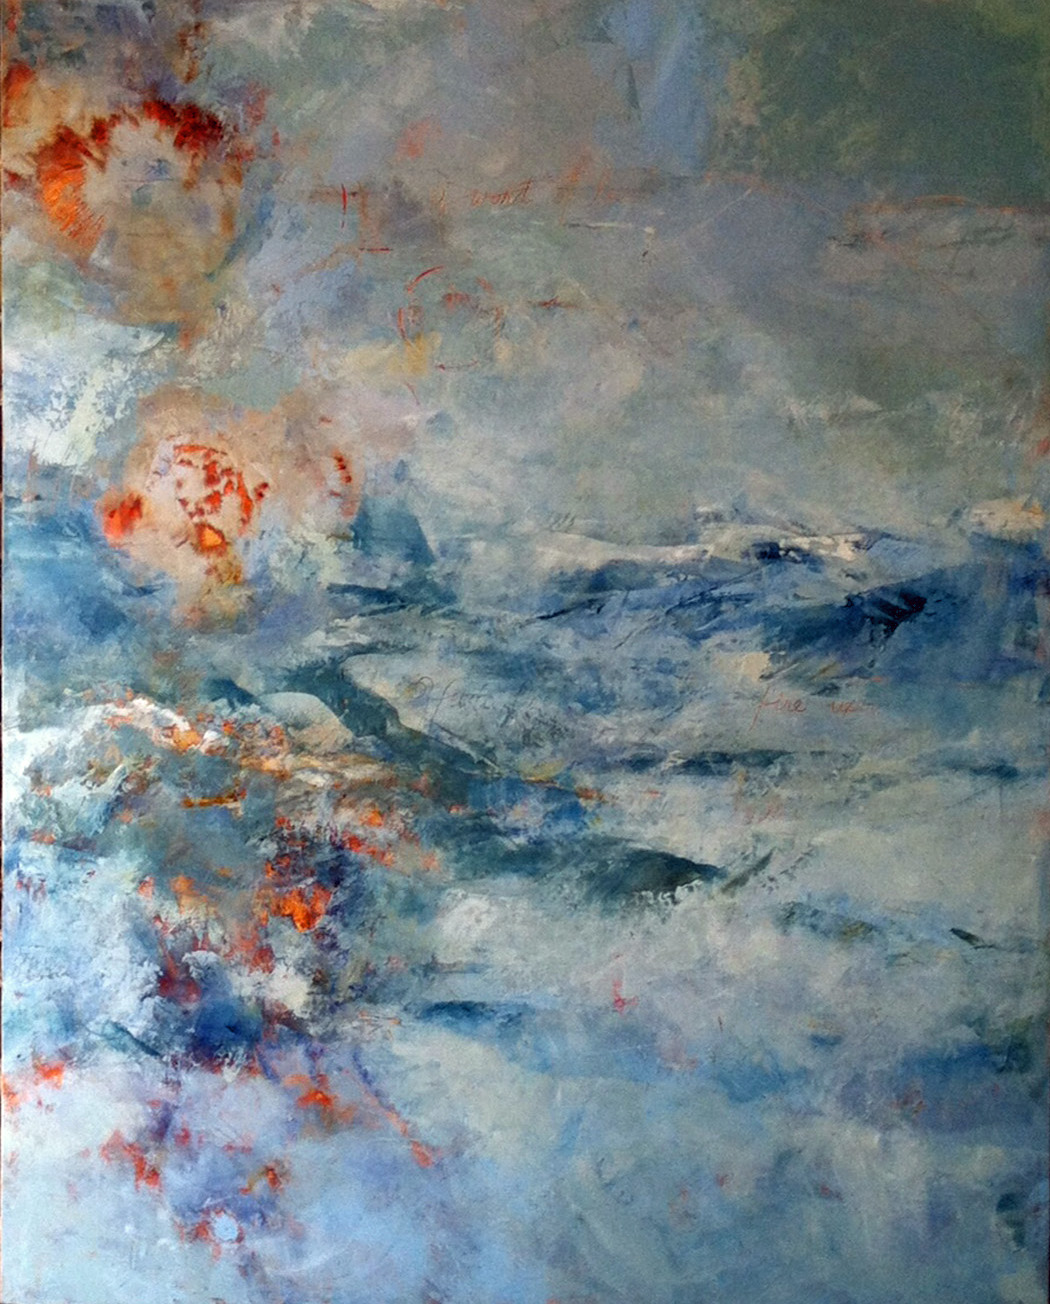 O Form Finely Wrought Upon the Waters,,,Fire Upon the Water 3 x 4 feet  oil and wax on panel.